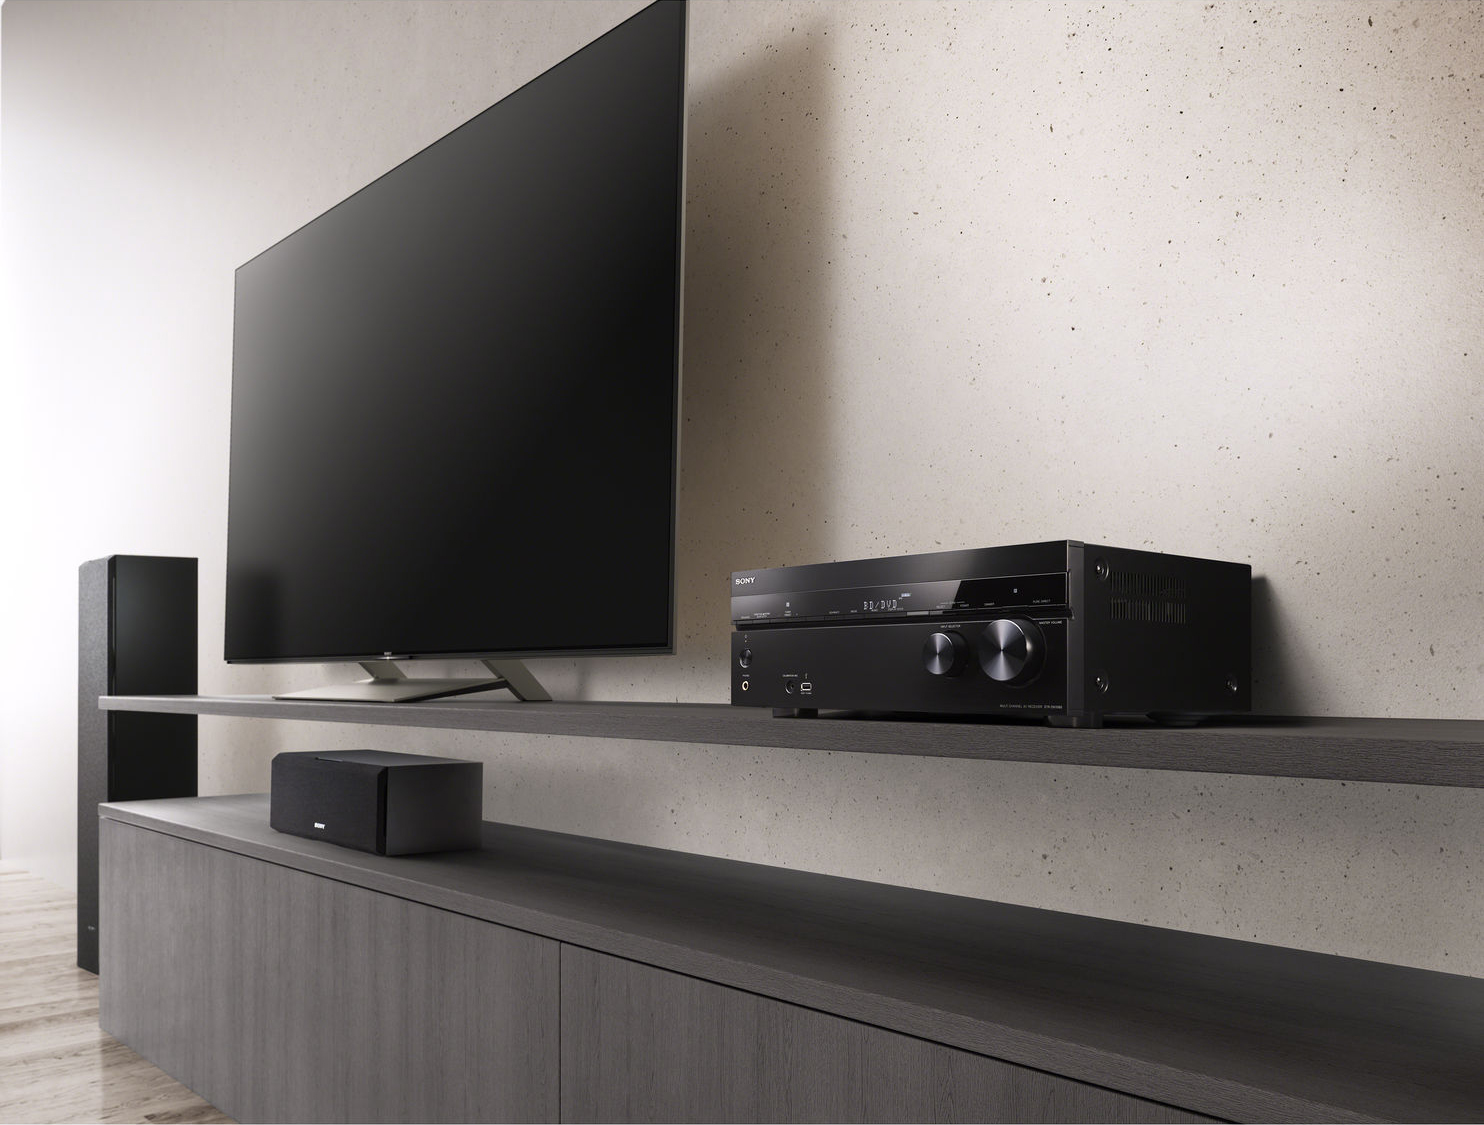 Choosing the Right Receiver for Big-Game Sound | B&H Explora